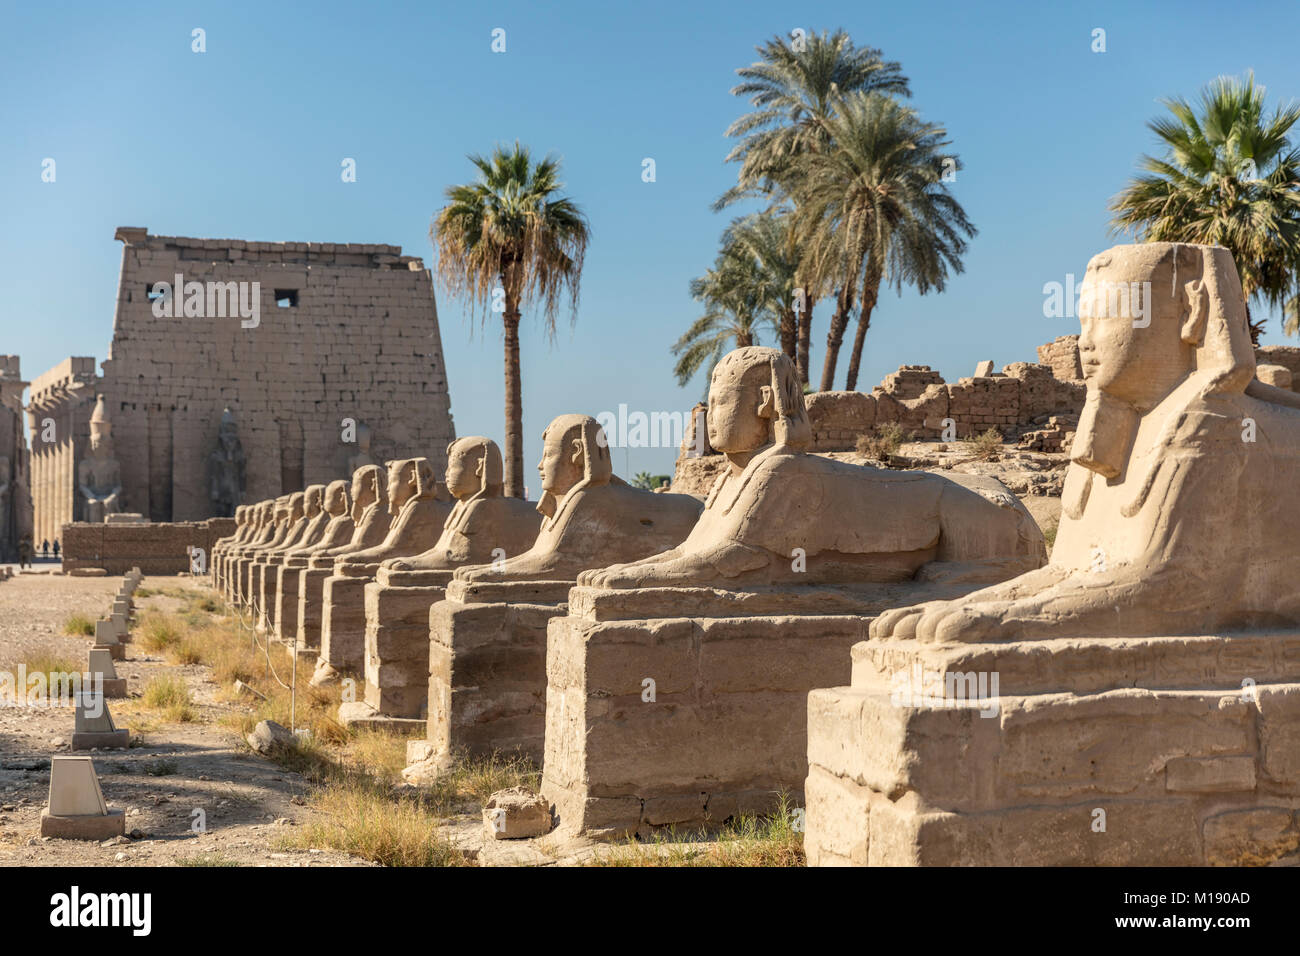 Luxor Temple, Luxor, Egypt - Stock Image